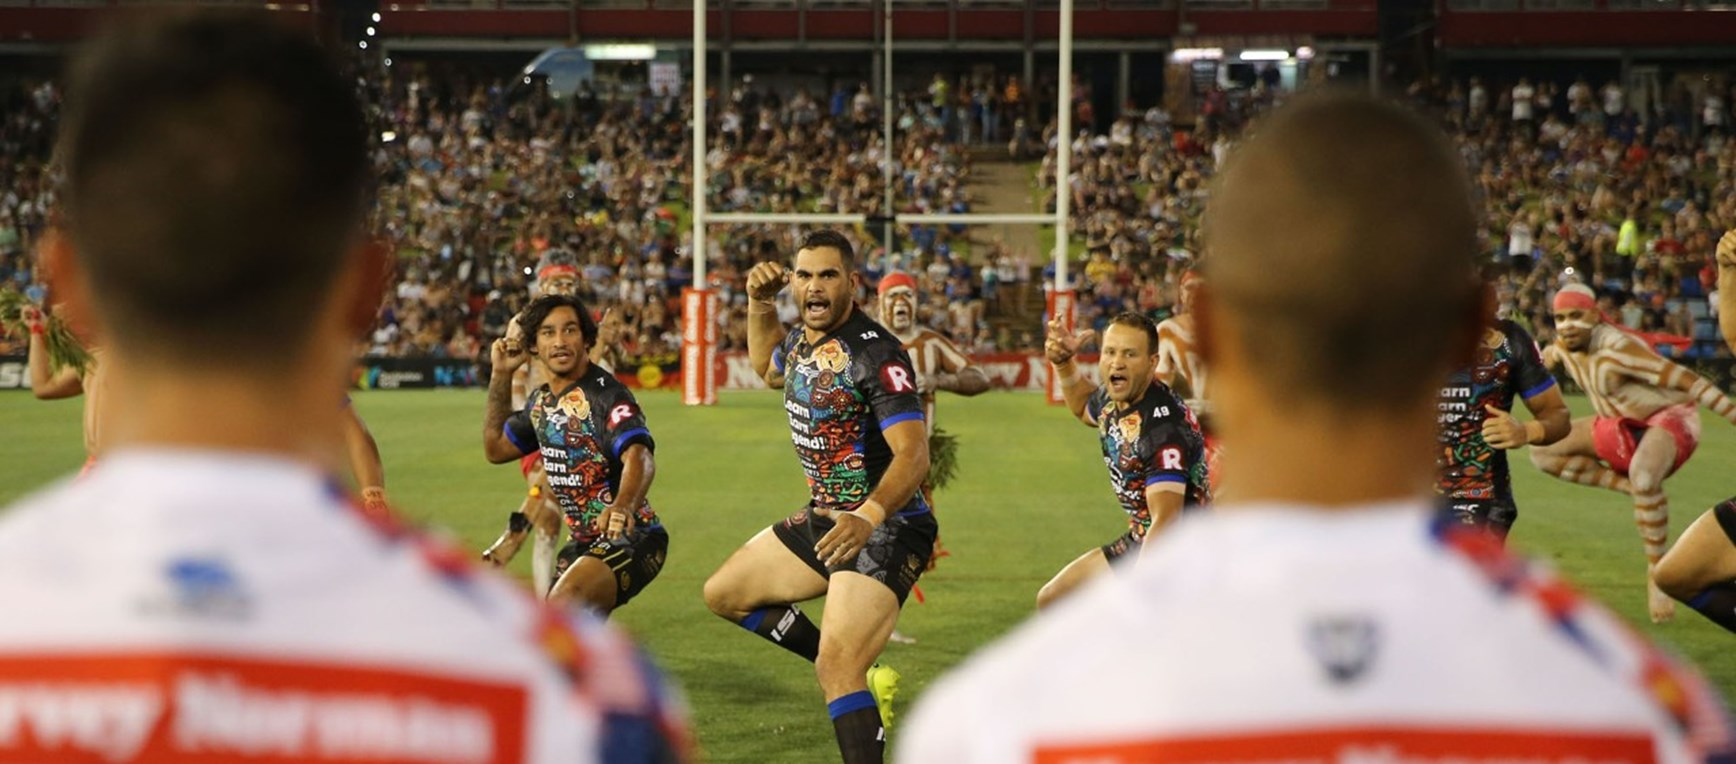 Gallery: NRL All Stars match